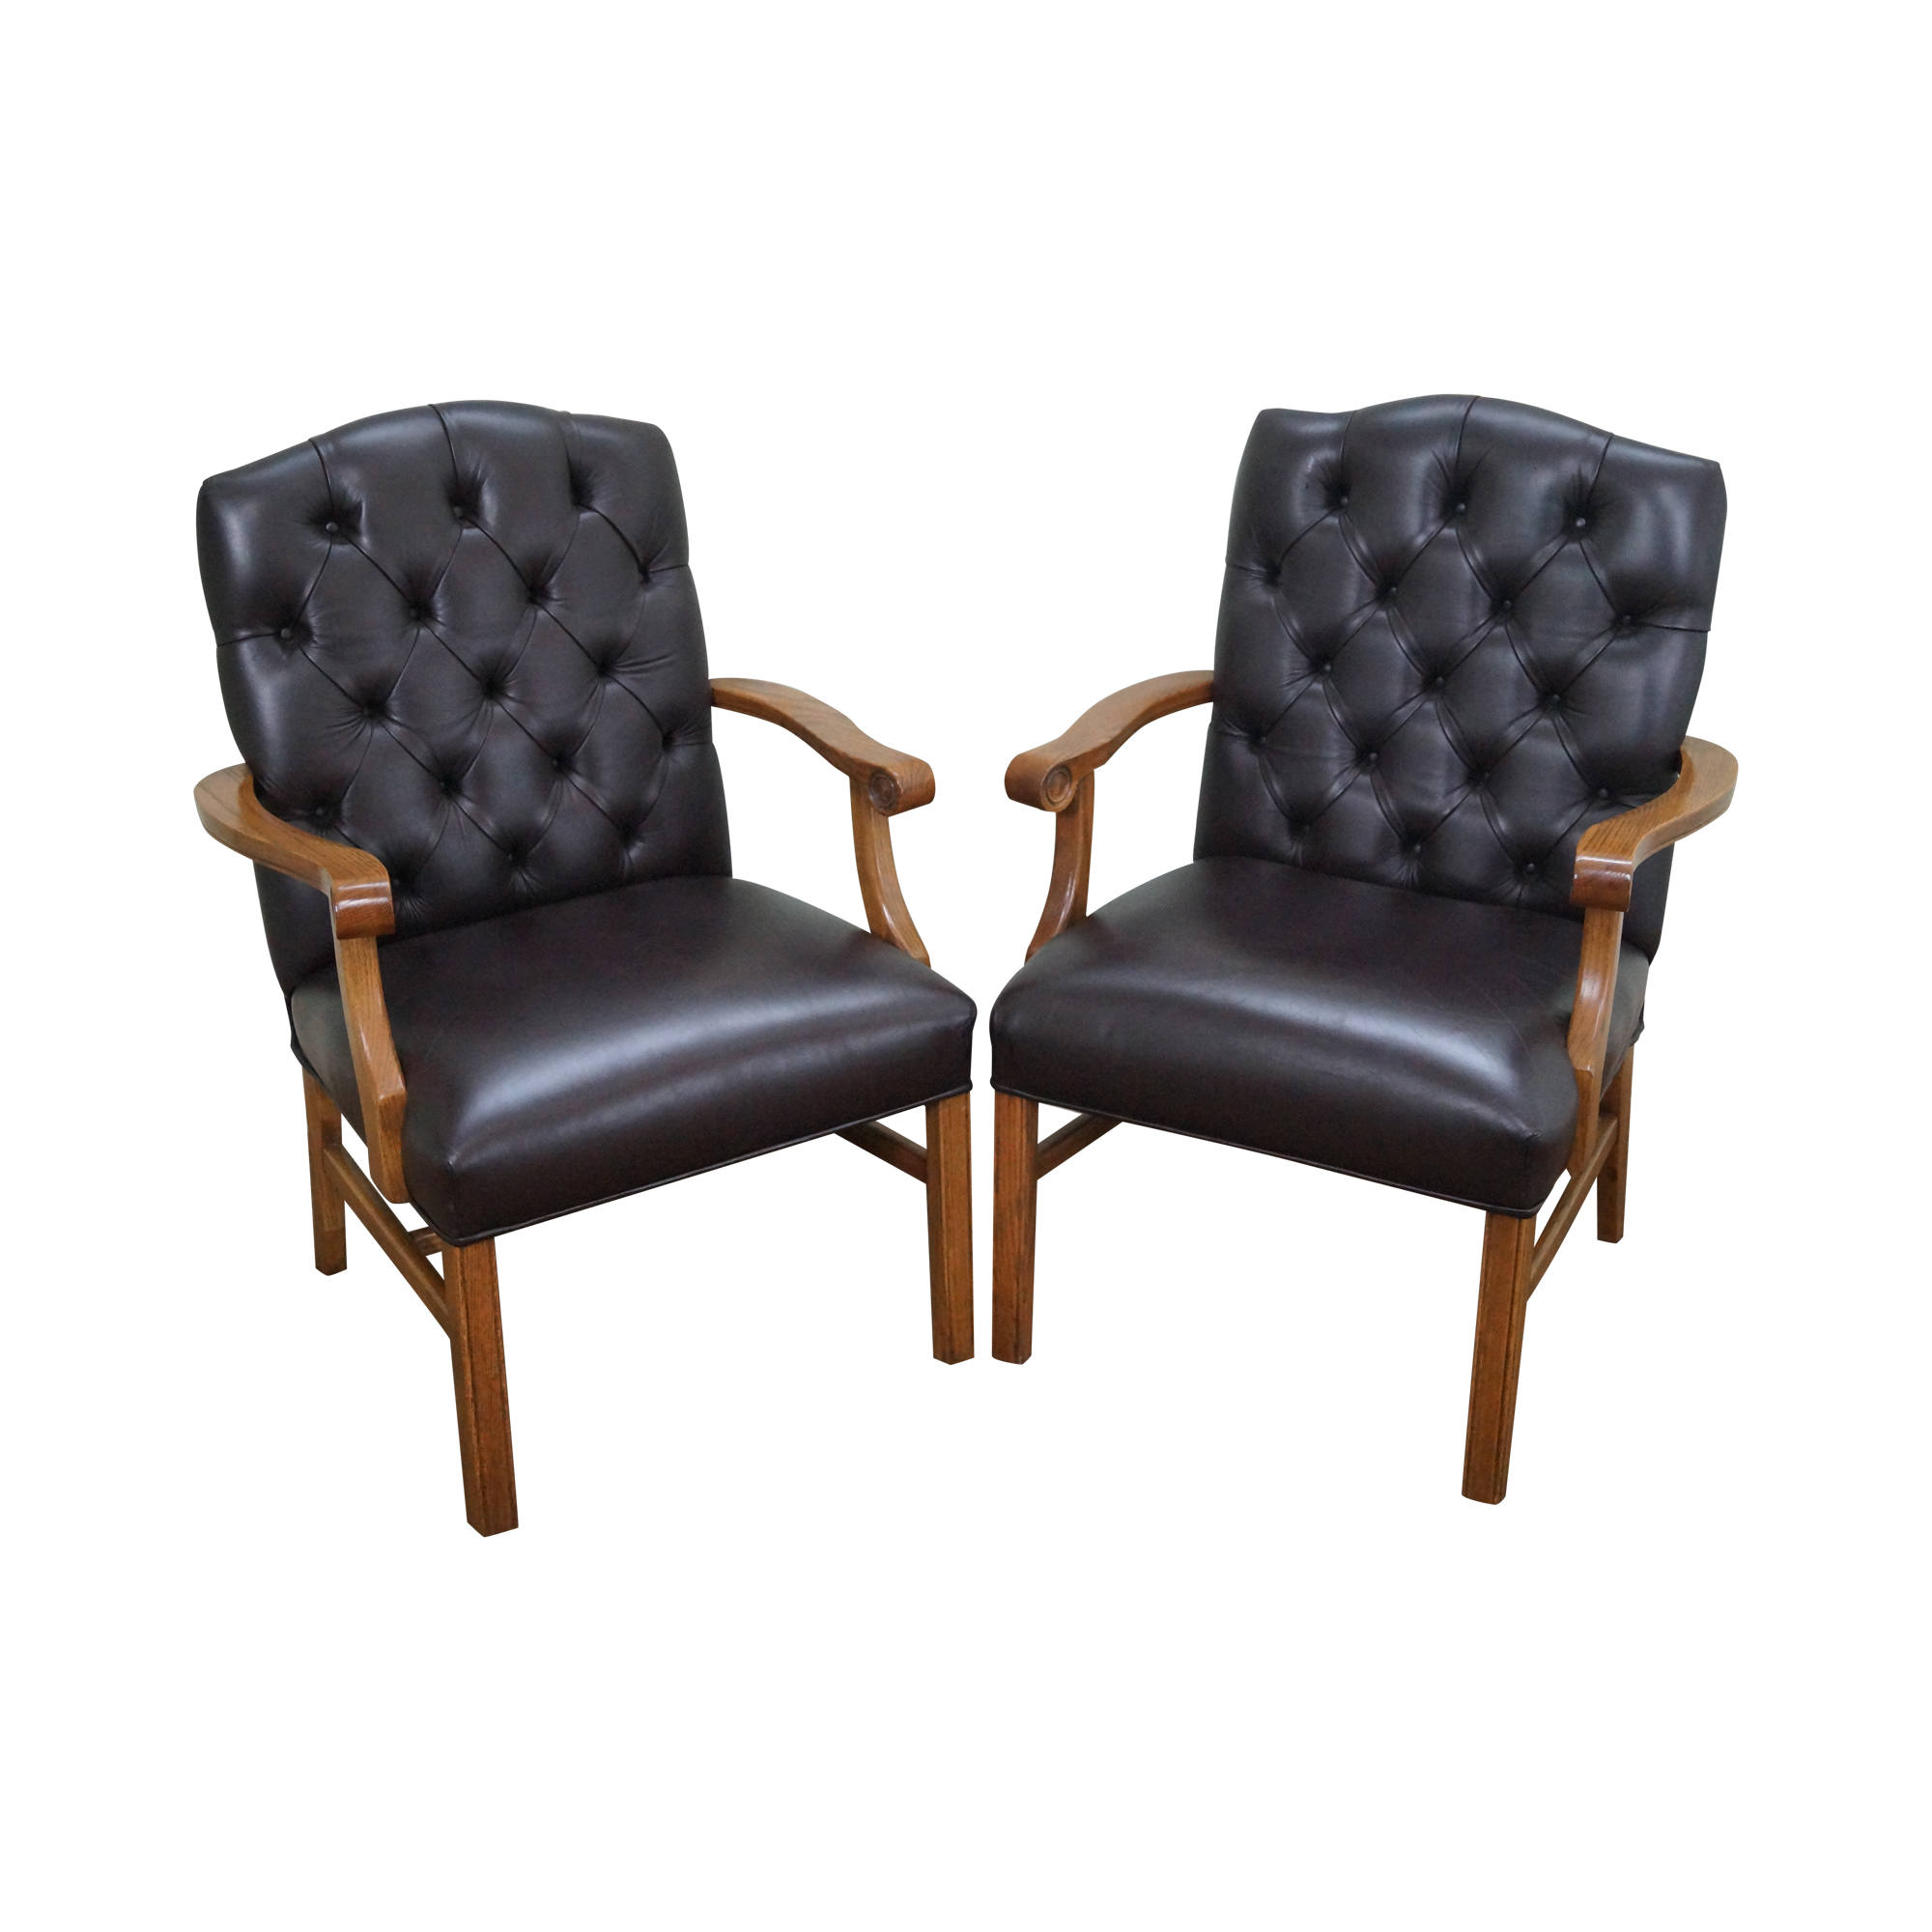 Chippendale Furniture Tufted Leather Chesterfield Chippendale Chairs Chairish